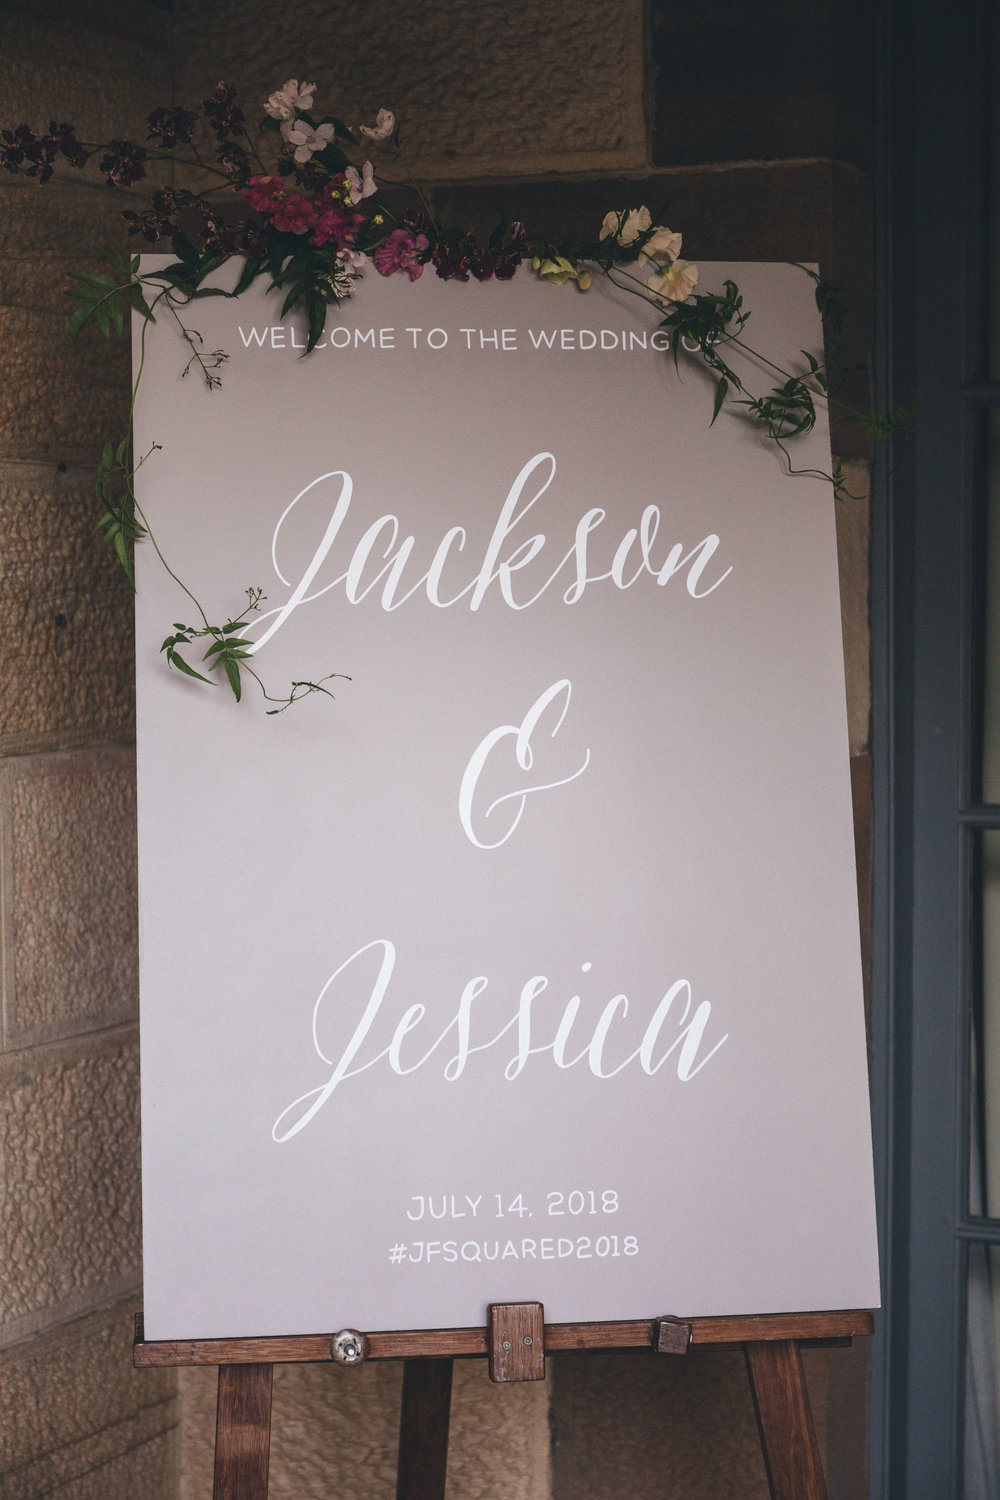 Welcome sign and decor - A personalised welcome sign placed at the ceremony entrance helps create a welcoming invitation to guests, sets the theme for the day, and also ensures that they feel at ease, knowing they're at the right location!